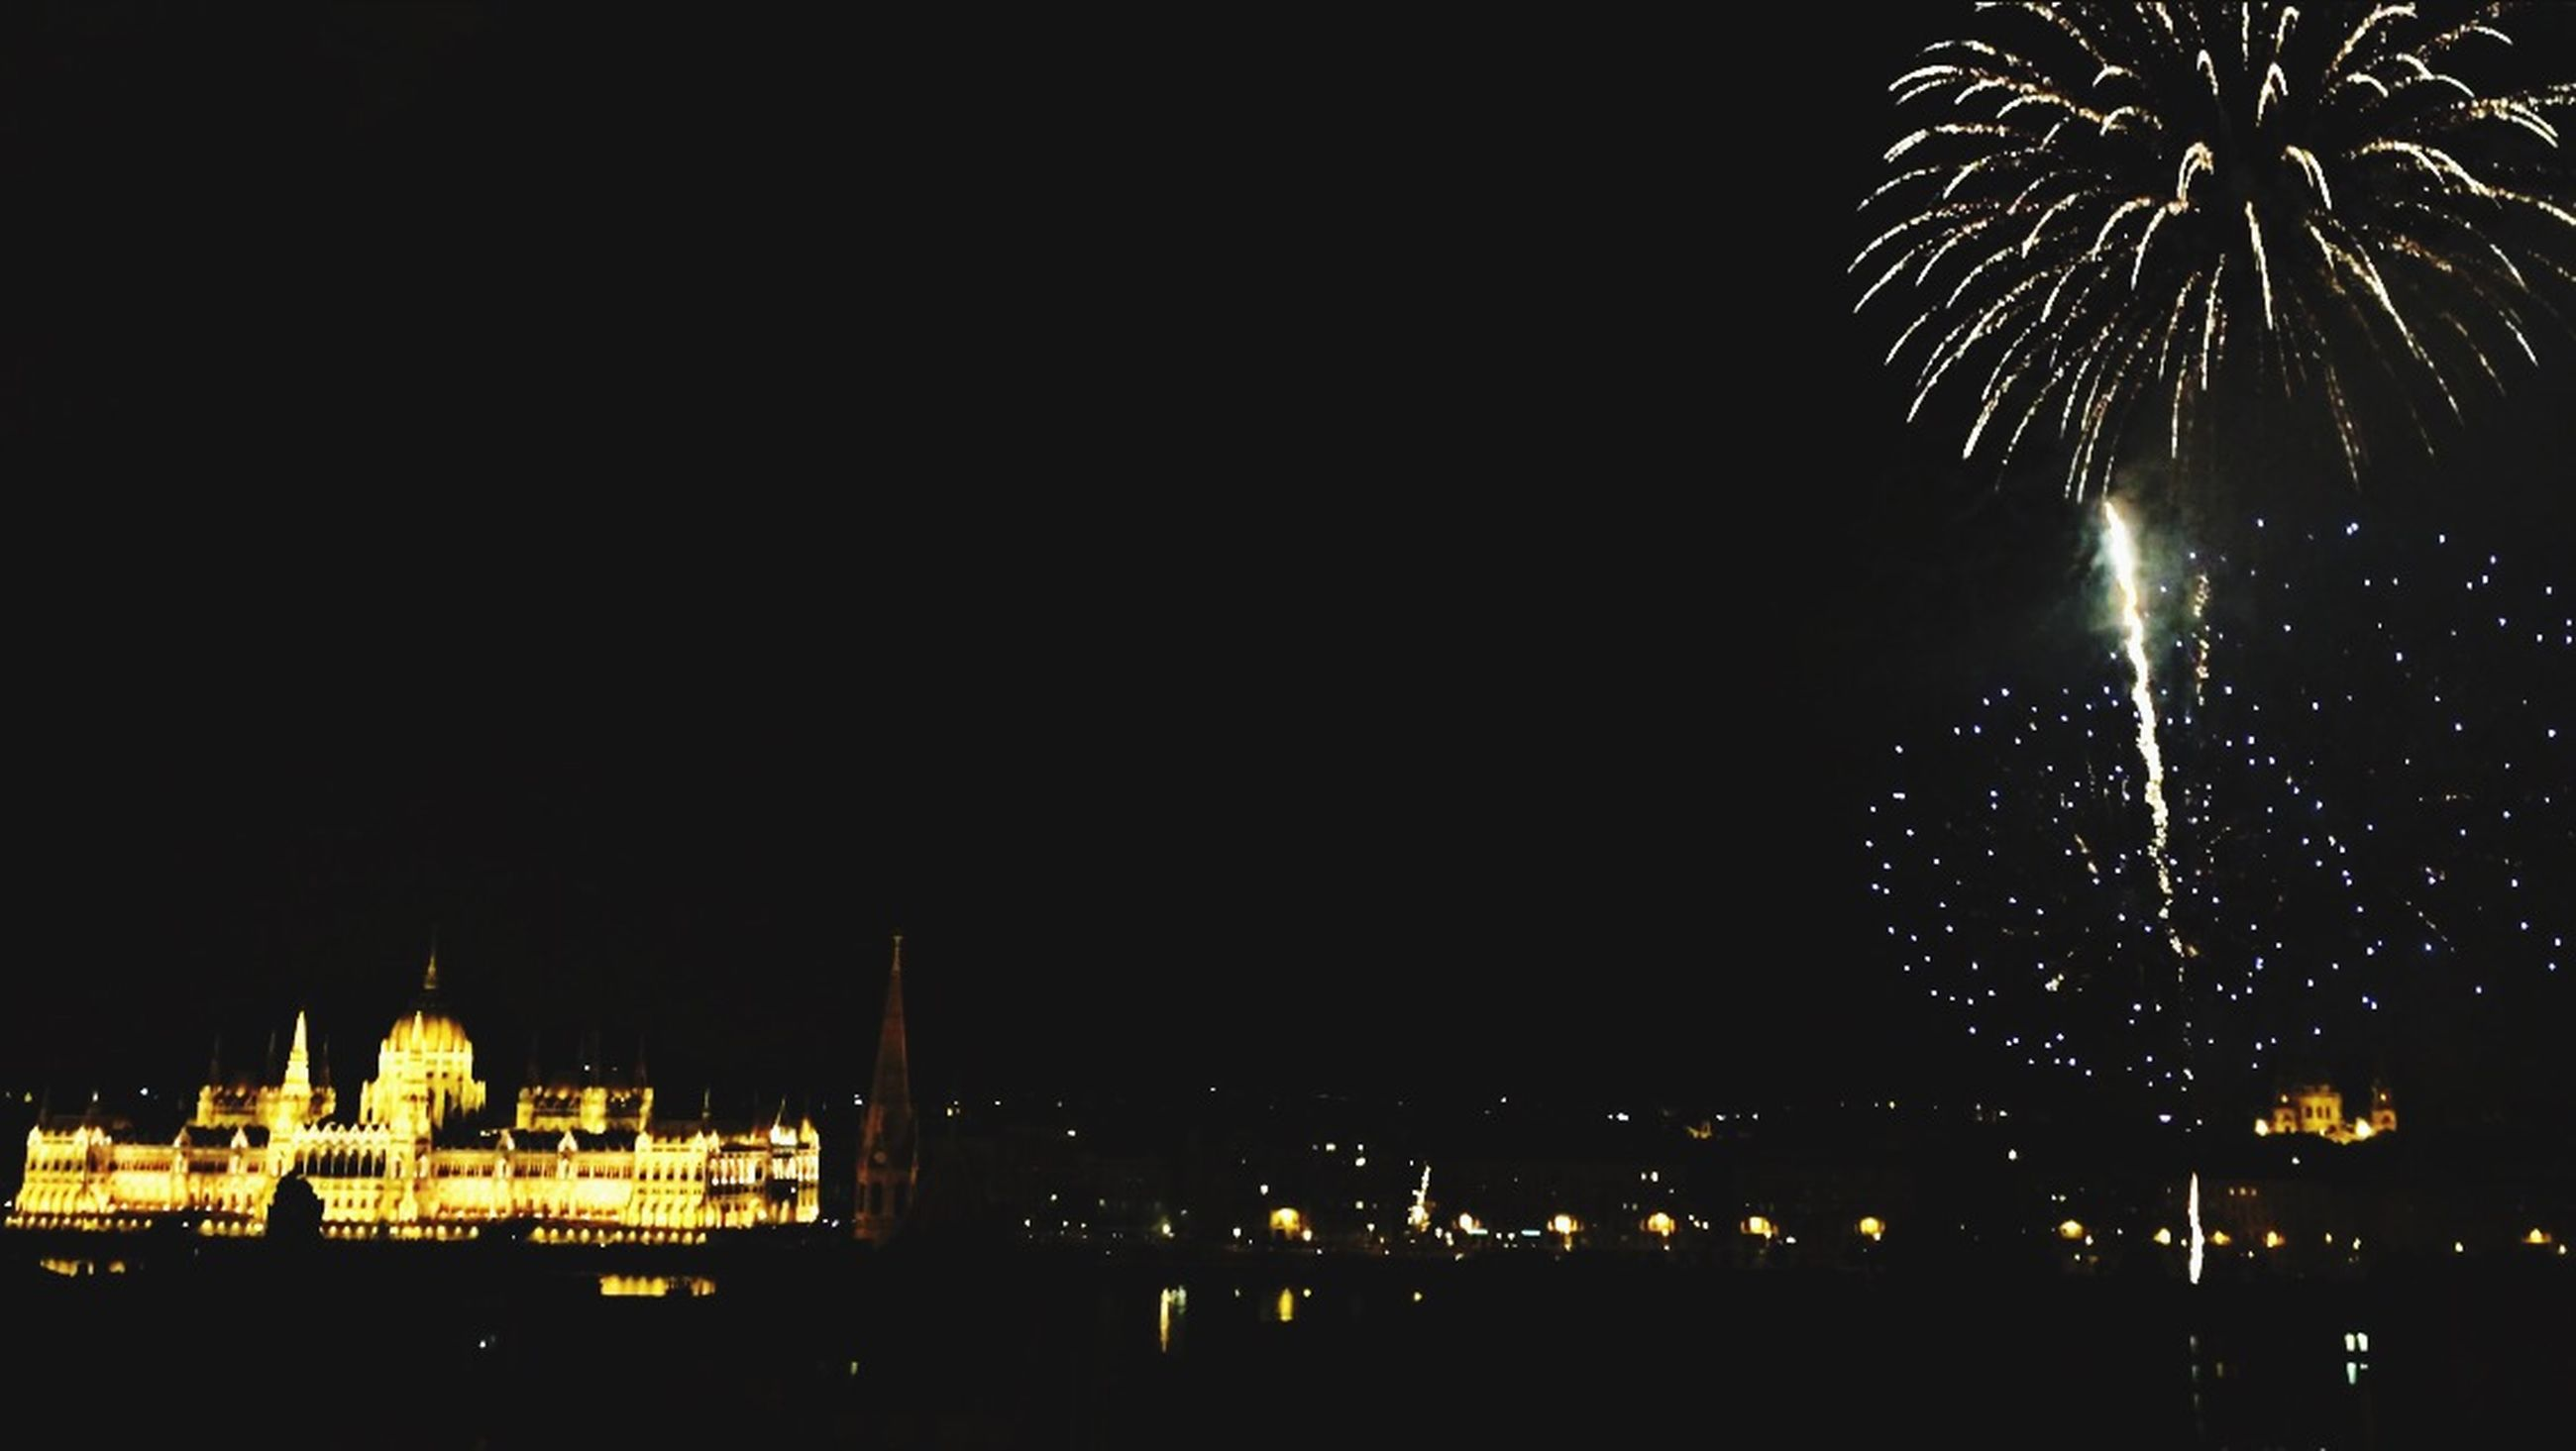 night, illuminated, building exterior, architecture, built structure, city, clear sky, travel destinations, copy space, famous place, cityscape, international landmark, glowing, religion, travel, sky, tourism, dark, outdoors, firework display